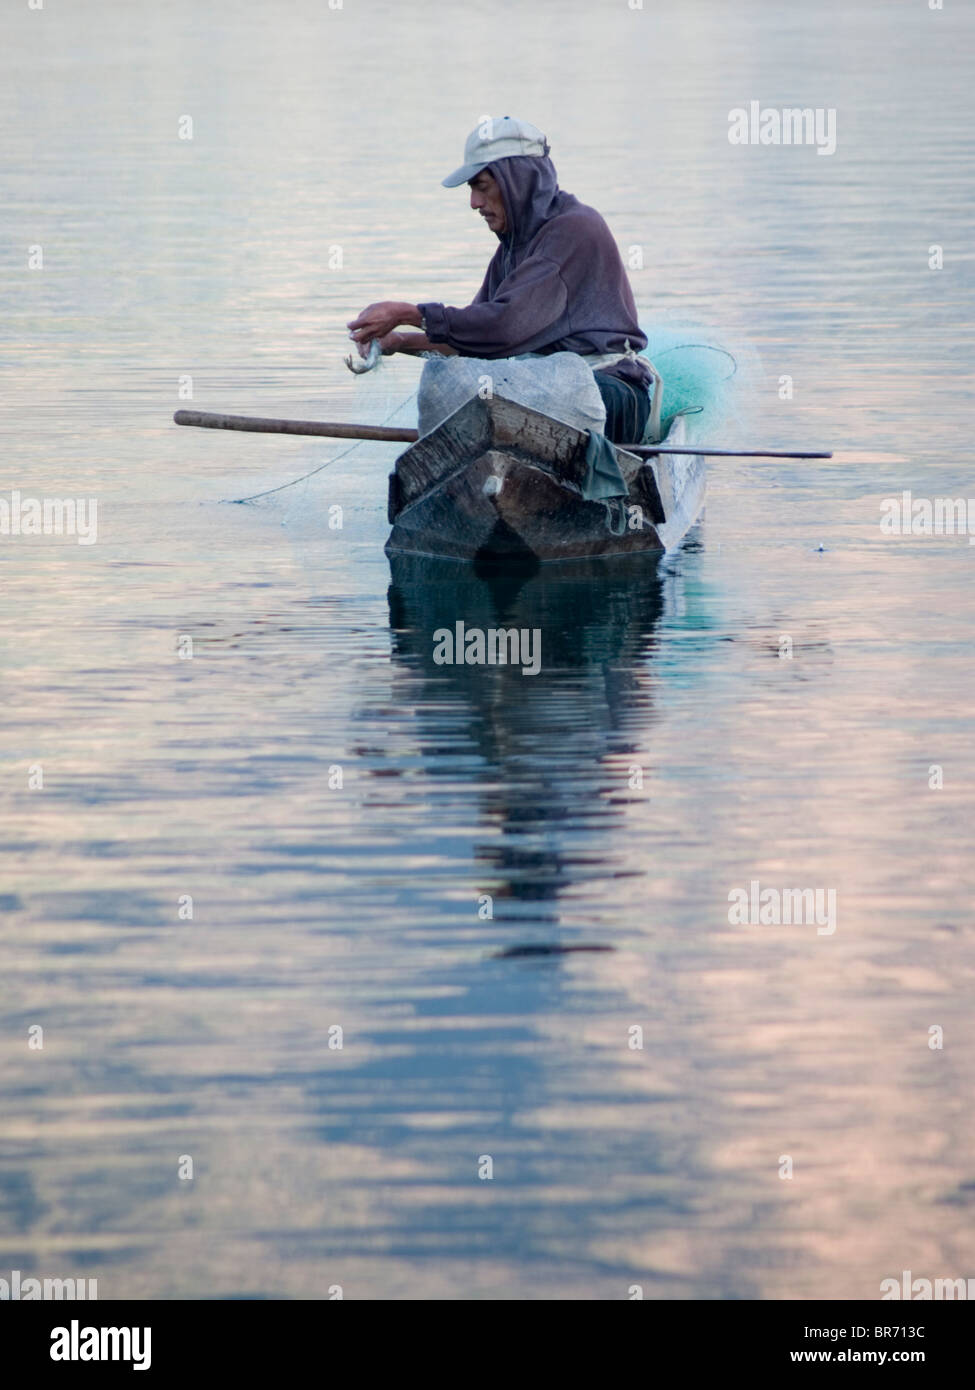 Fresh water fishermen at work on Lake Atitlan in Santiago Atitlan Guatemala. - Stock Image